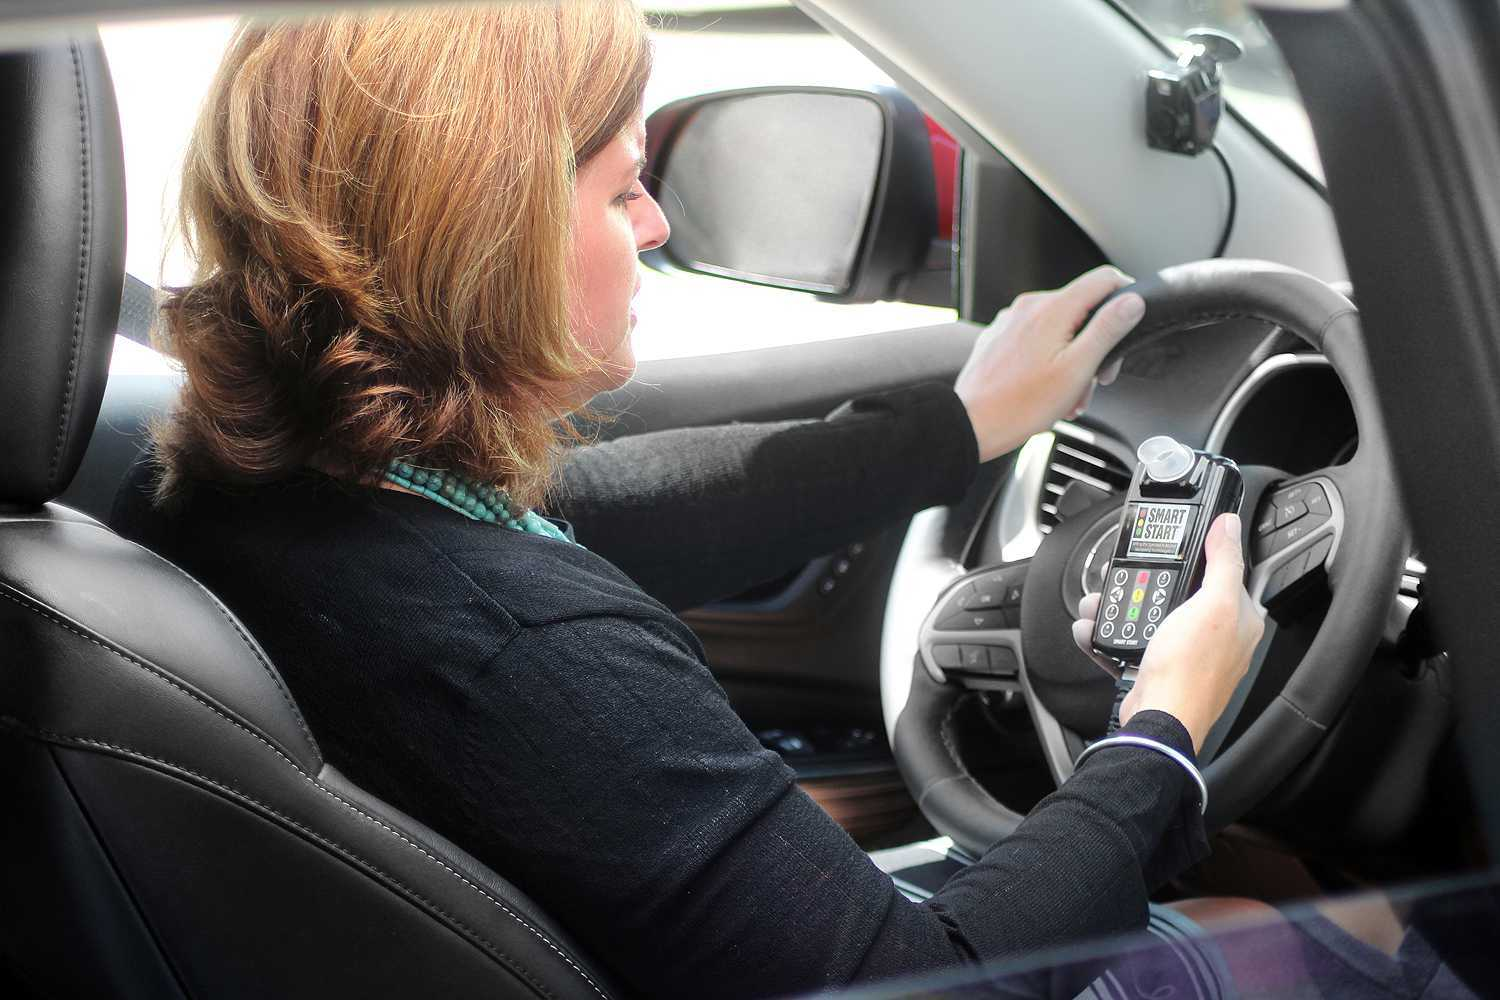 Can I Use My Company Car When I'm Ignition Interlock-Restricted?